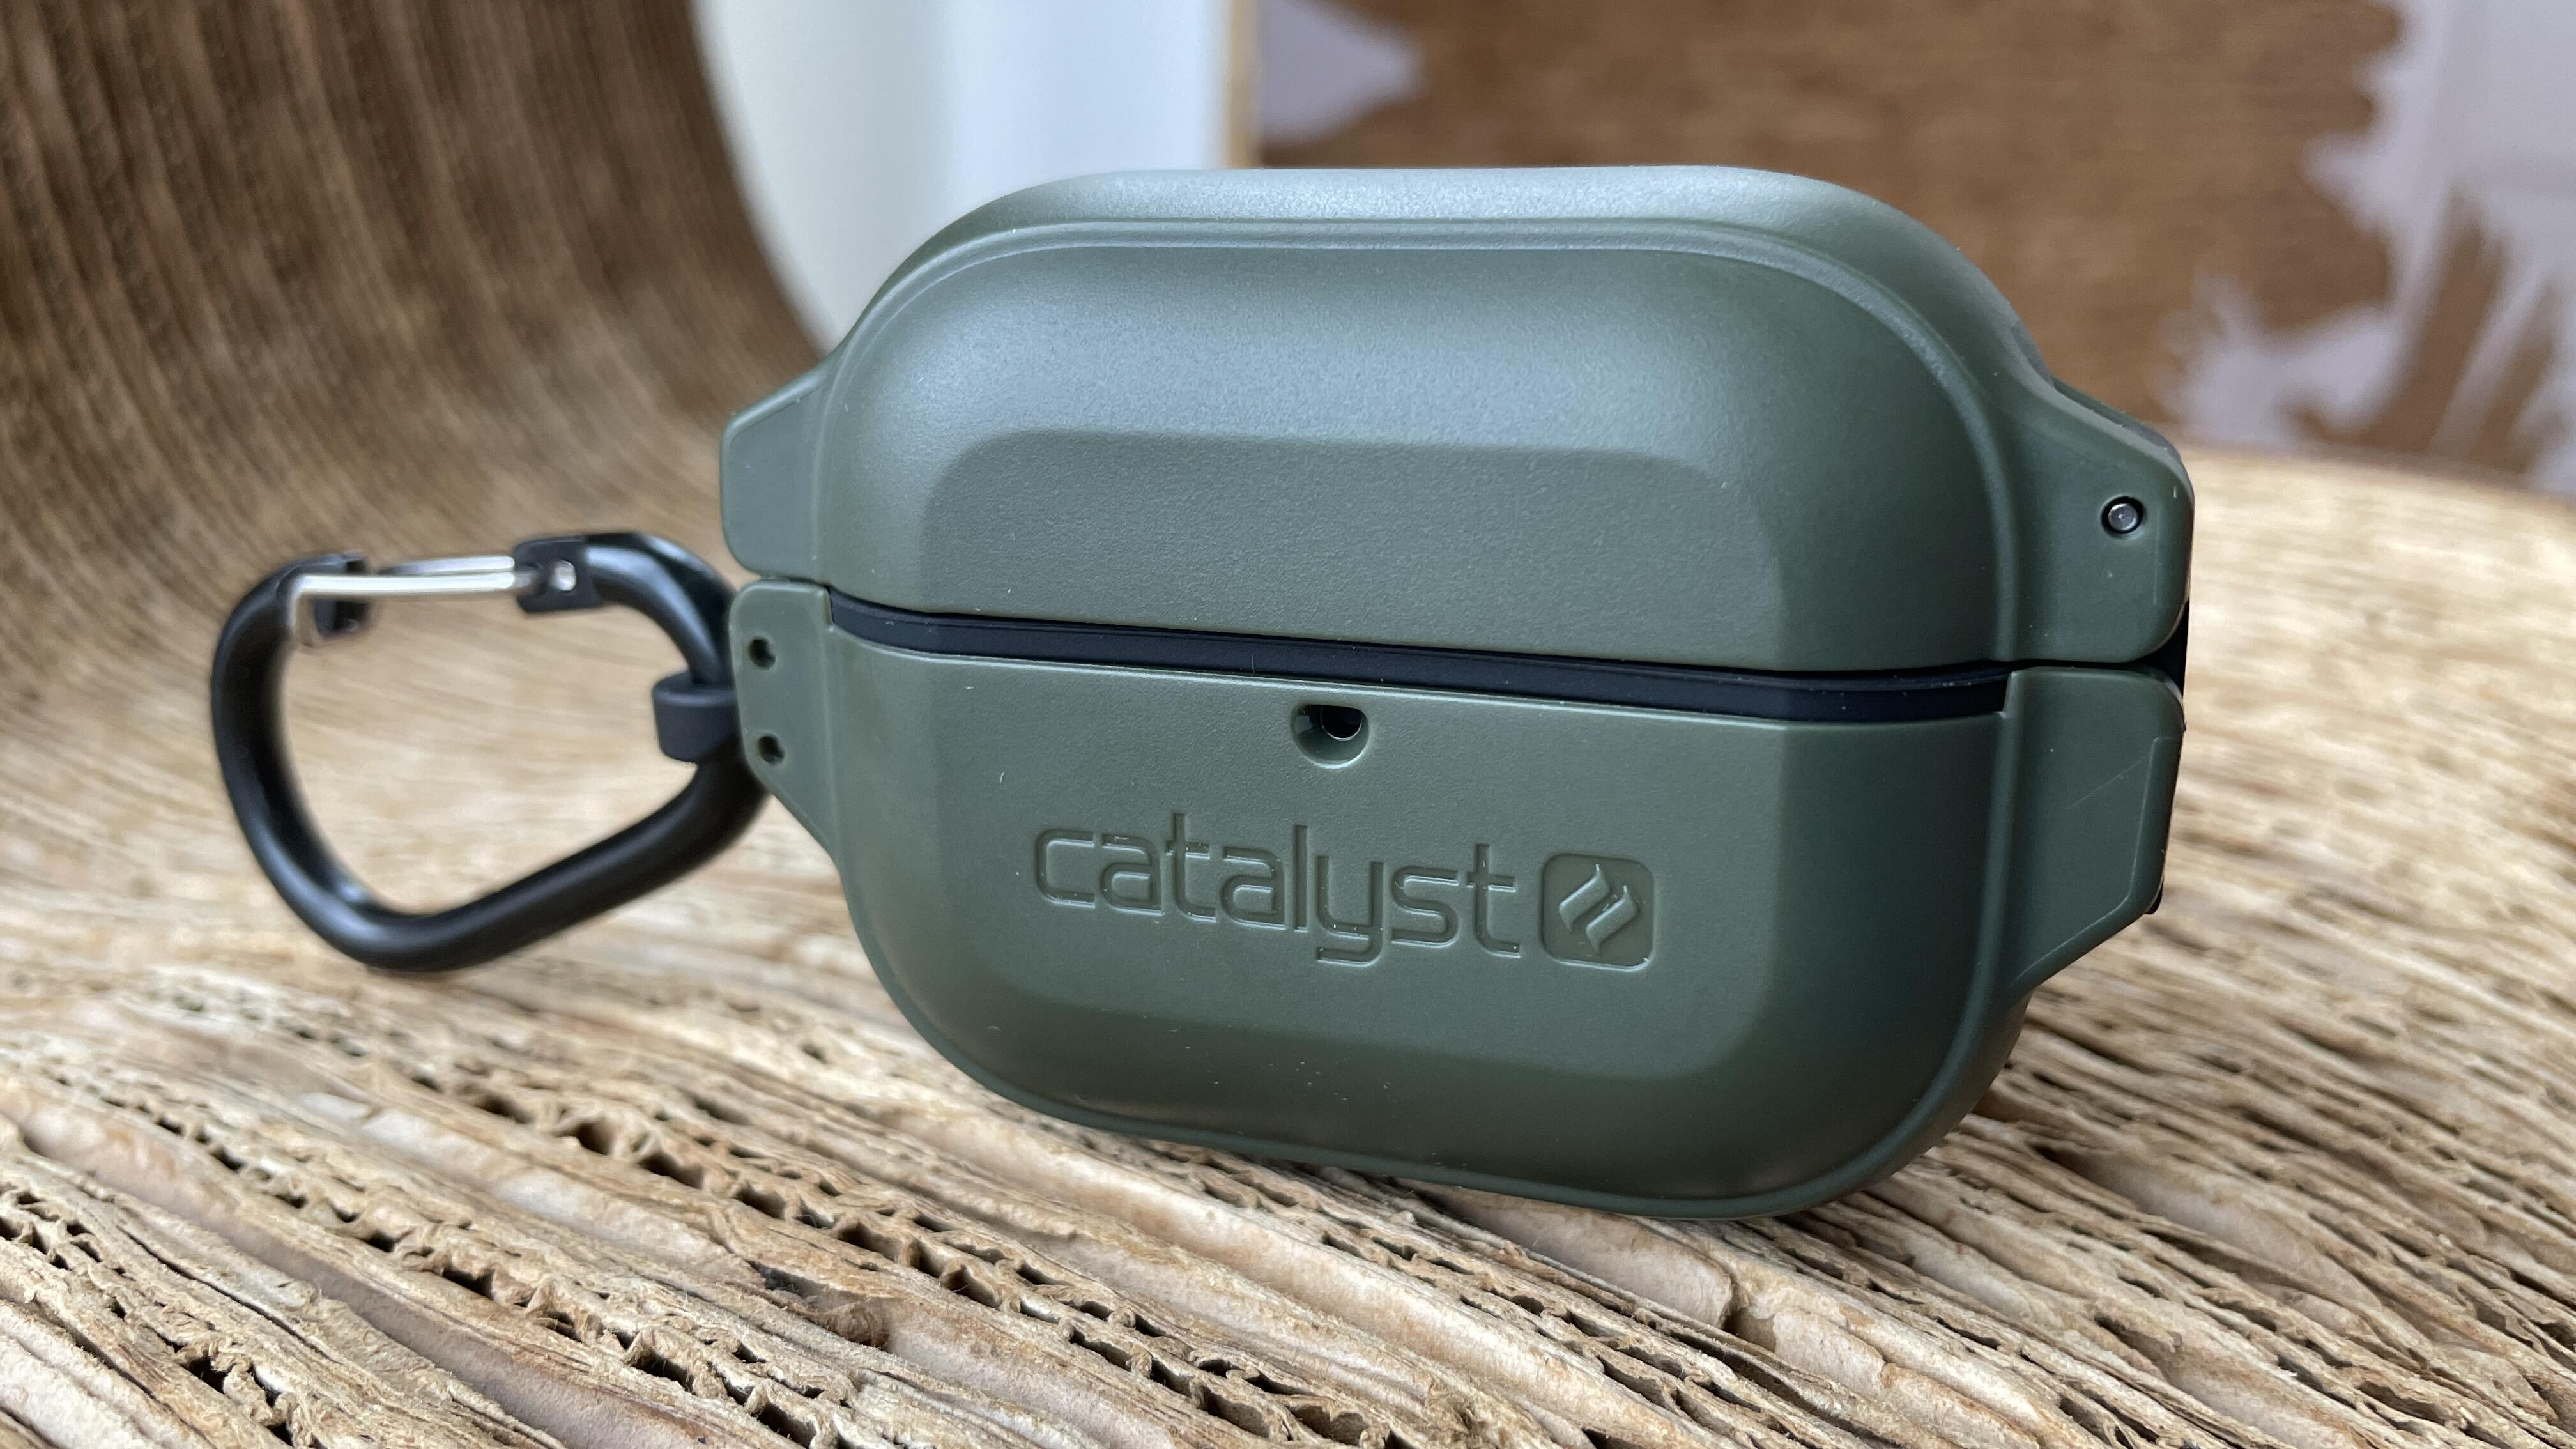 catalyst total protection airpods pro